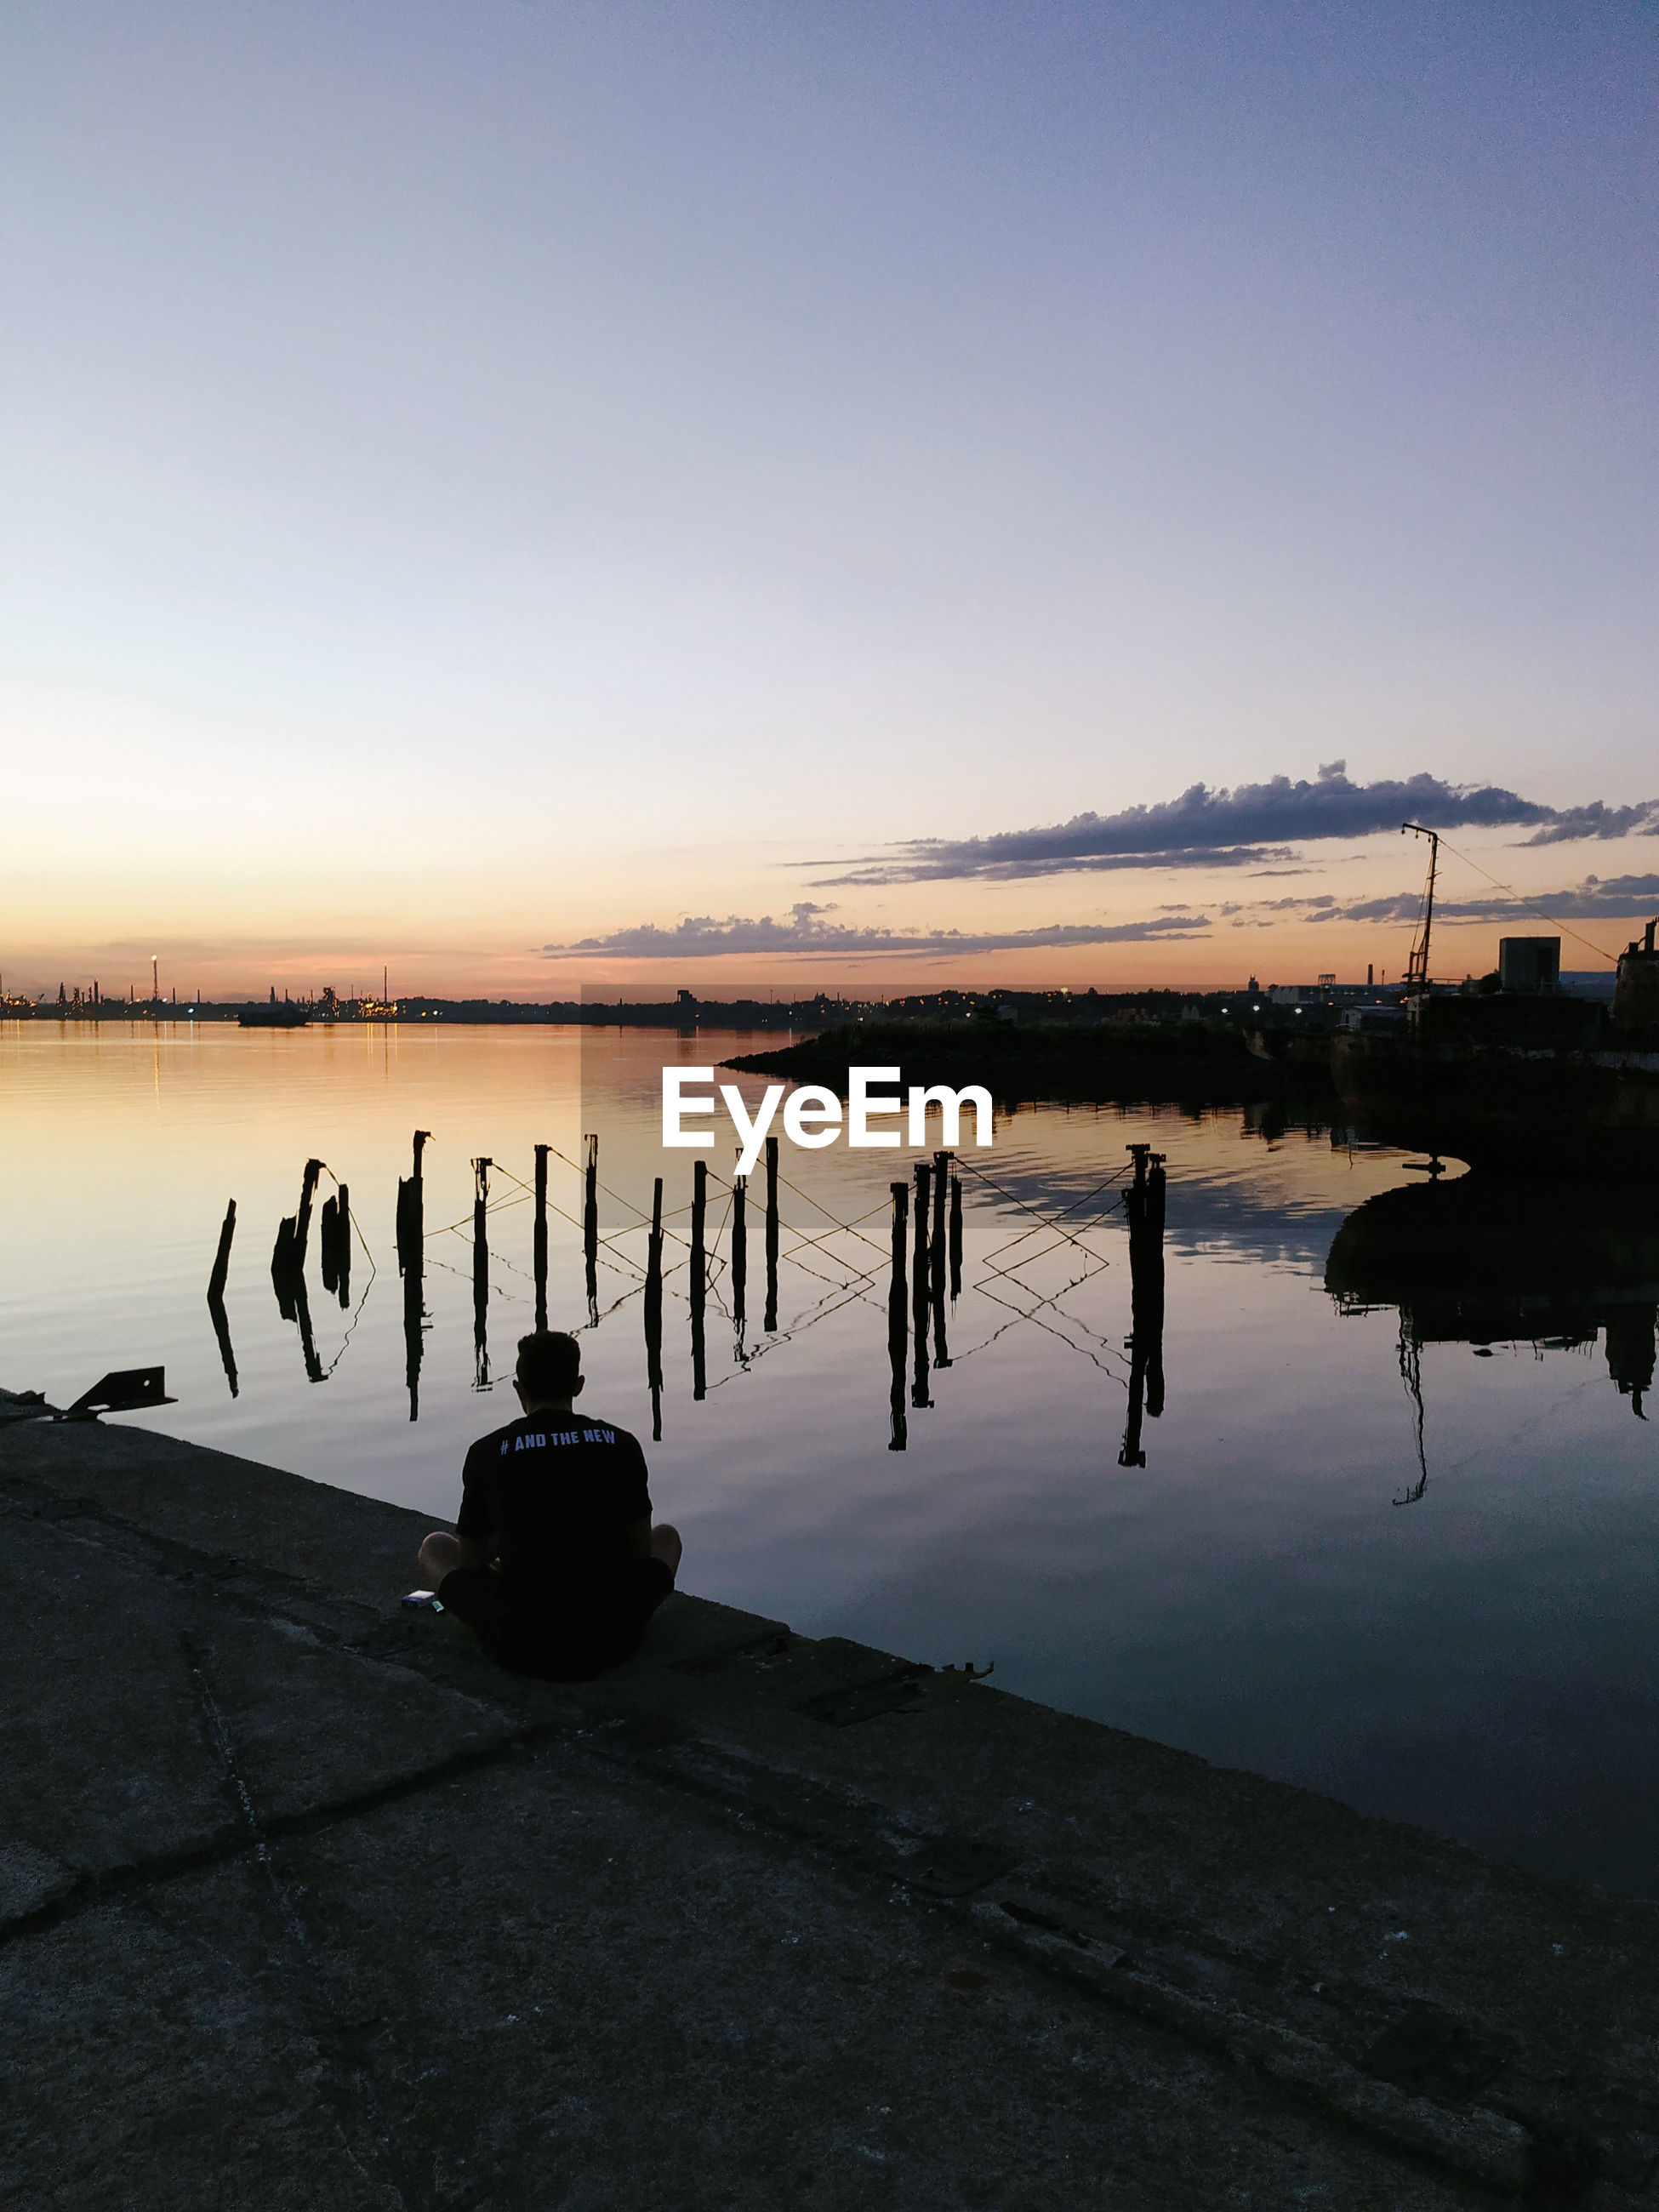 SILHOUETTE OF WOODEN POST IN LAKE AGAINST SKY DURING SUNSET